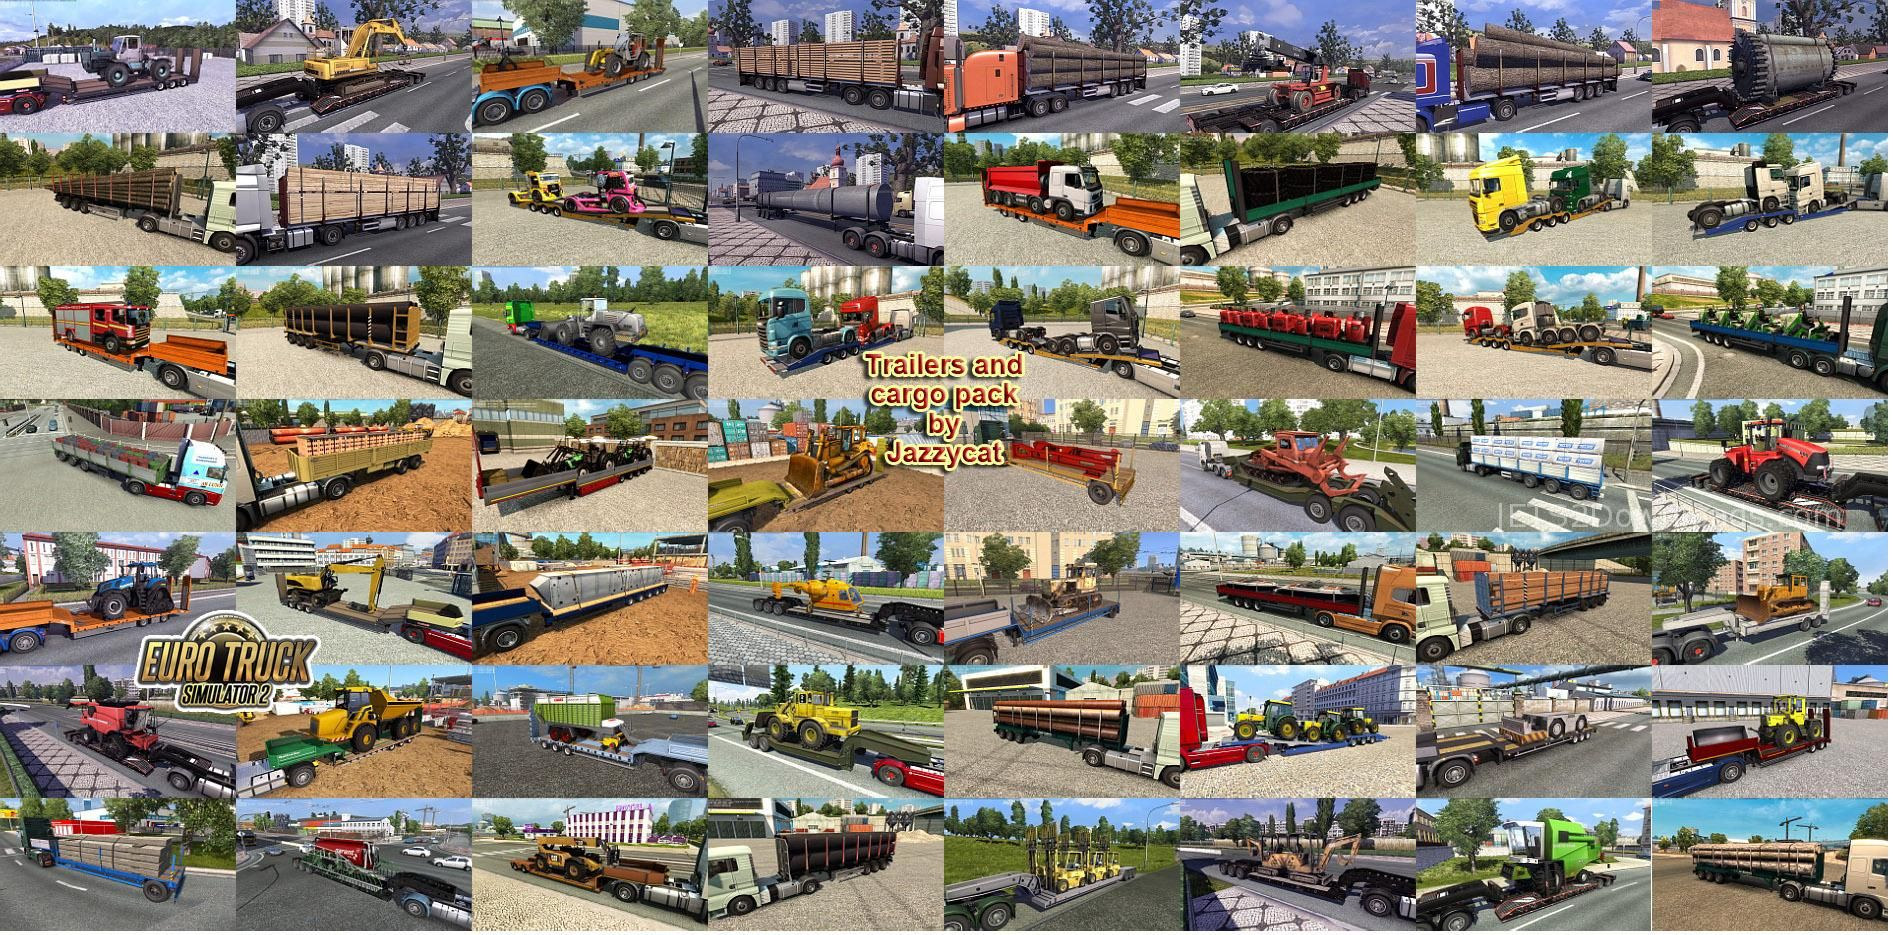 Trailers and Cargo Pack By Jazzycat v6 8 - ETS2 Mods